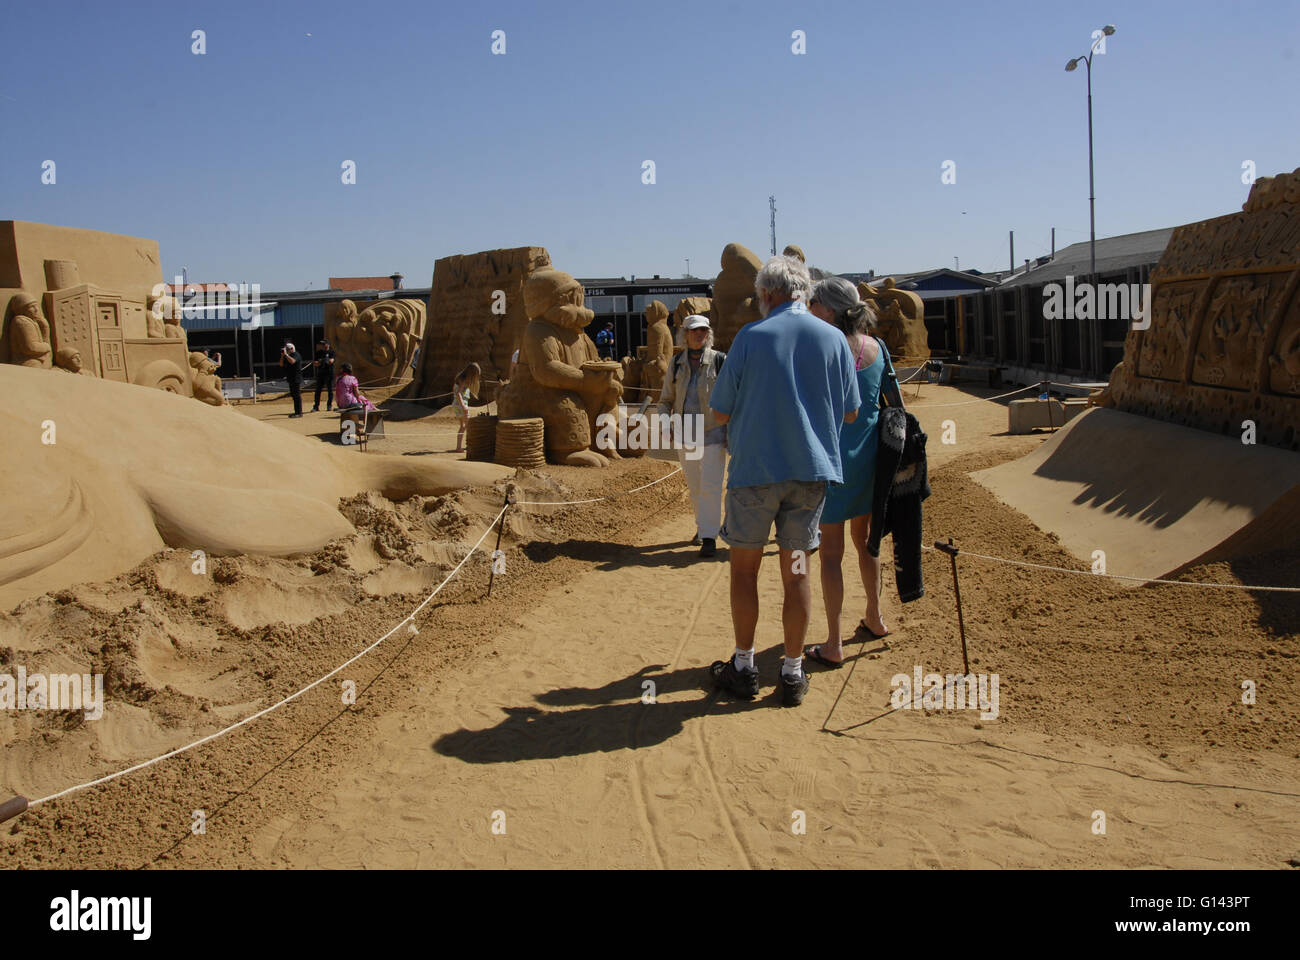 Hundested, Denmark. 8th May, 2016. Michel de Kok dutch sand sculptures artists stand infront of his sand sculpture - Stock Image